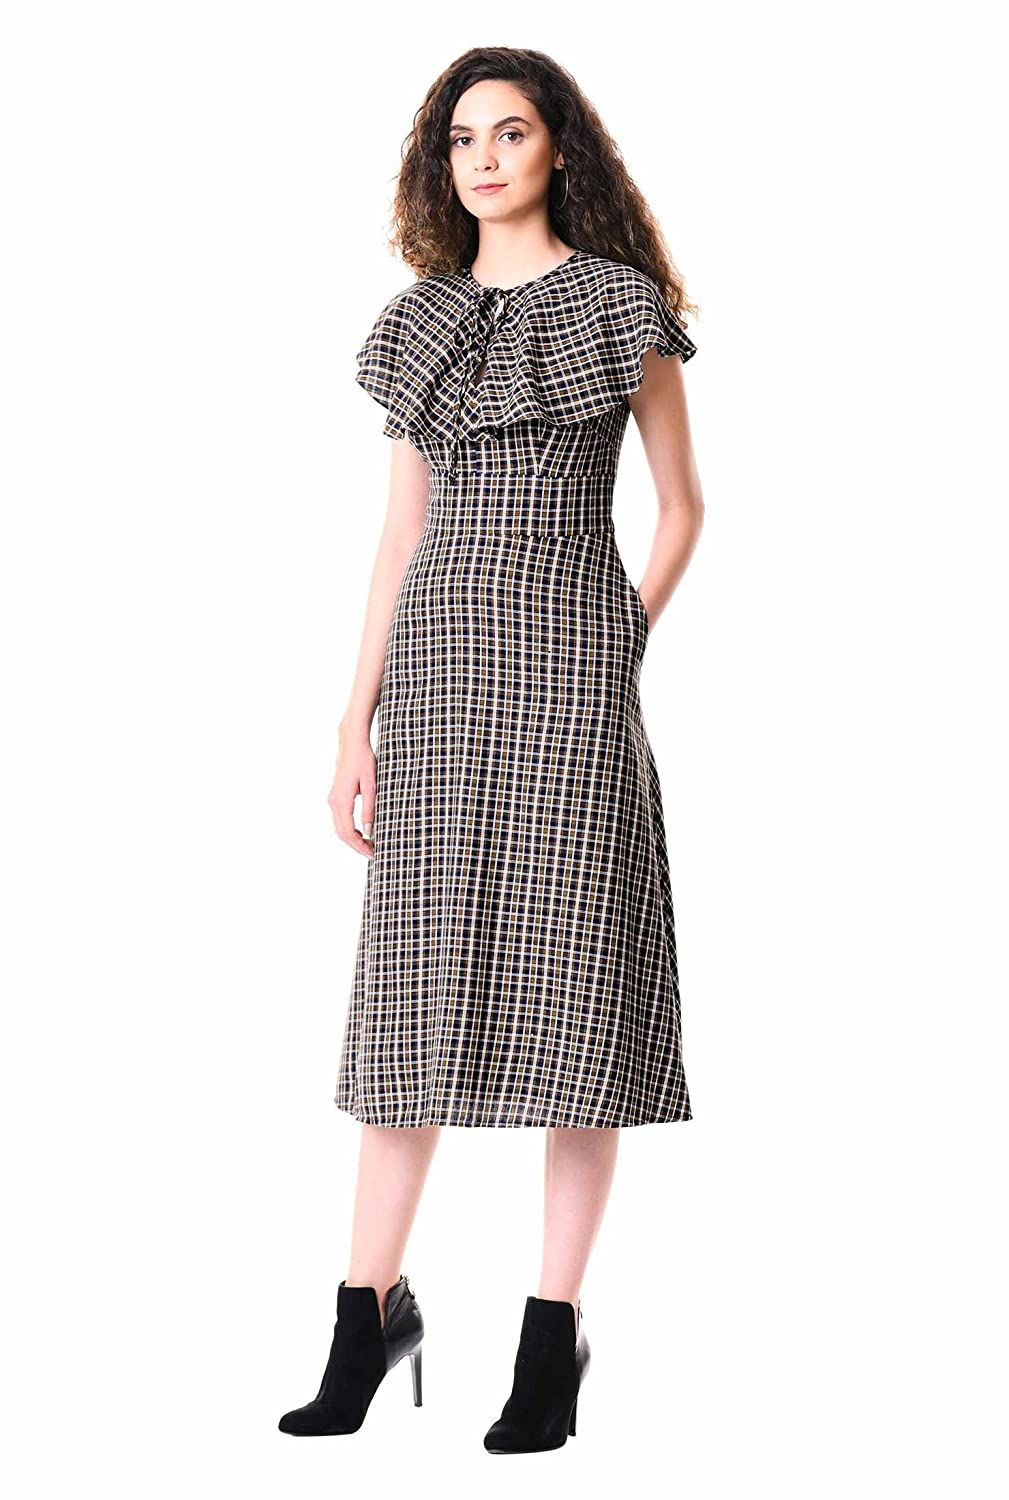 1930s Art Deco Plus Size Dresses | Tea Dresses, Party Dresses eShakti Womens Ruffle Cotton Twill Check Dress $79.95 AT vintagedancer.com